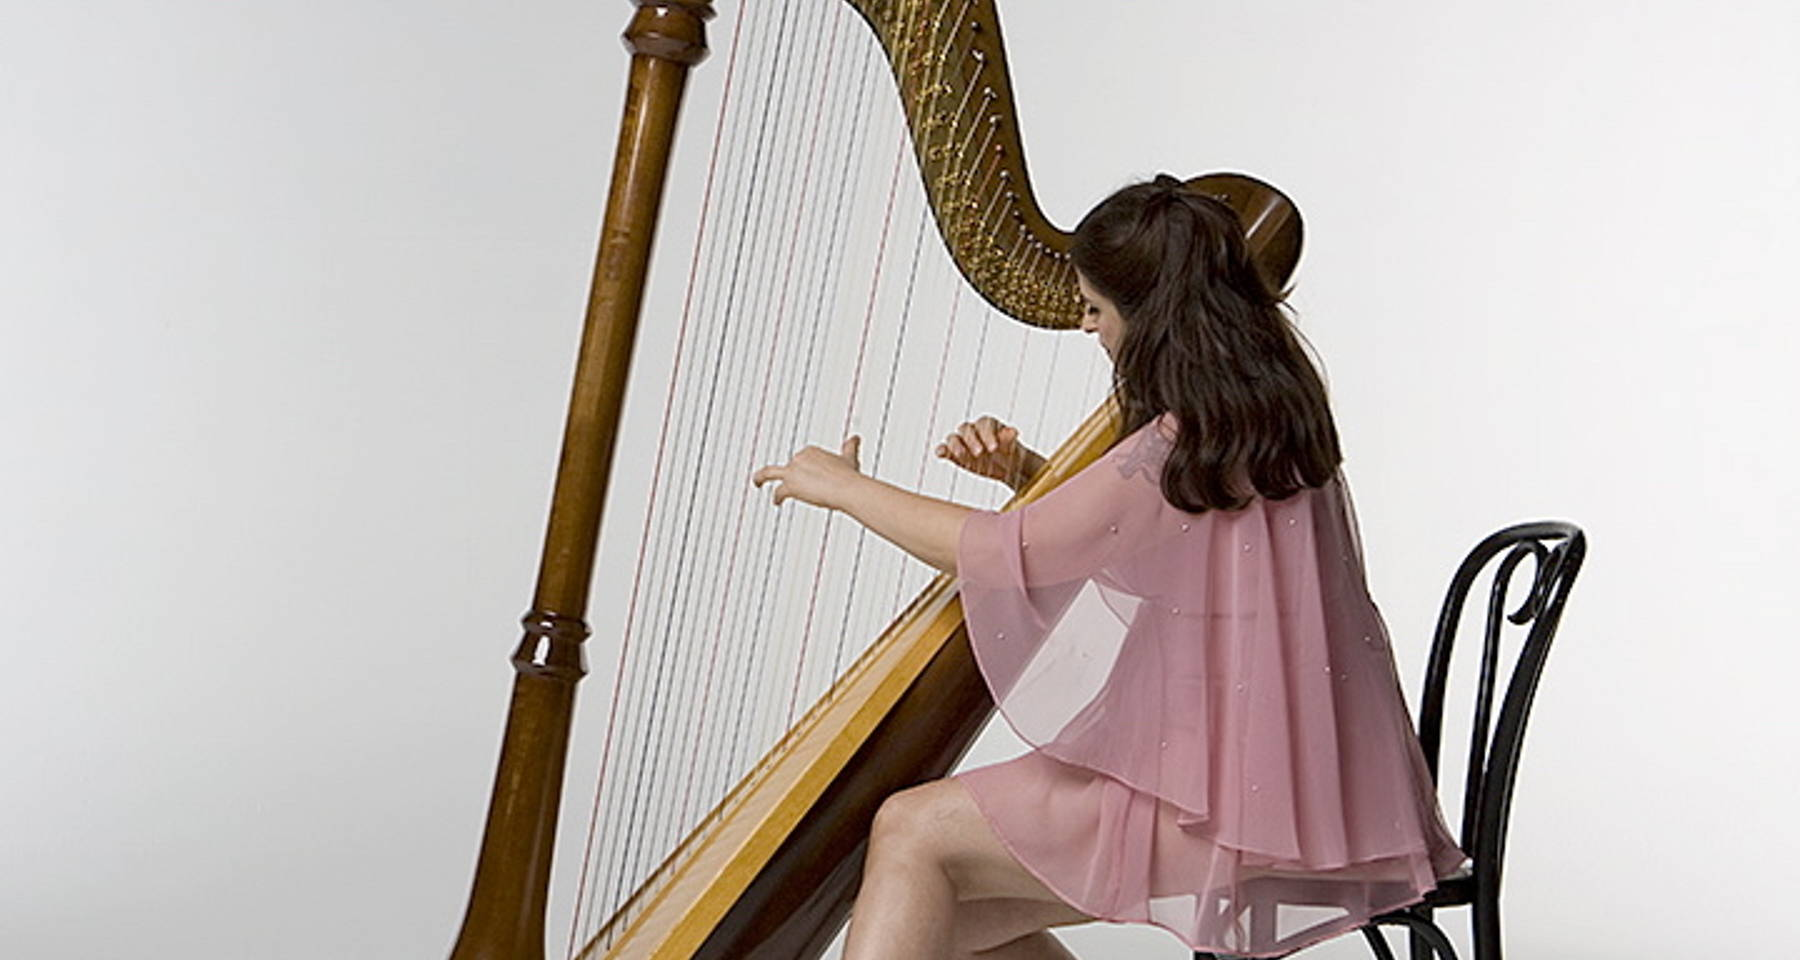 Visions and Fantasies-classics and new works for harp by Mia Theodoratus